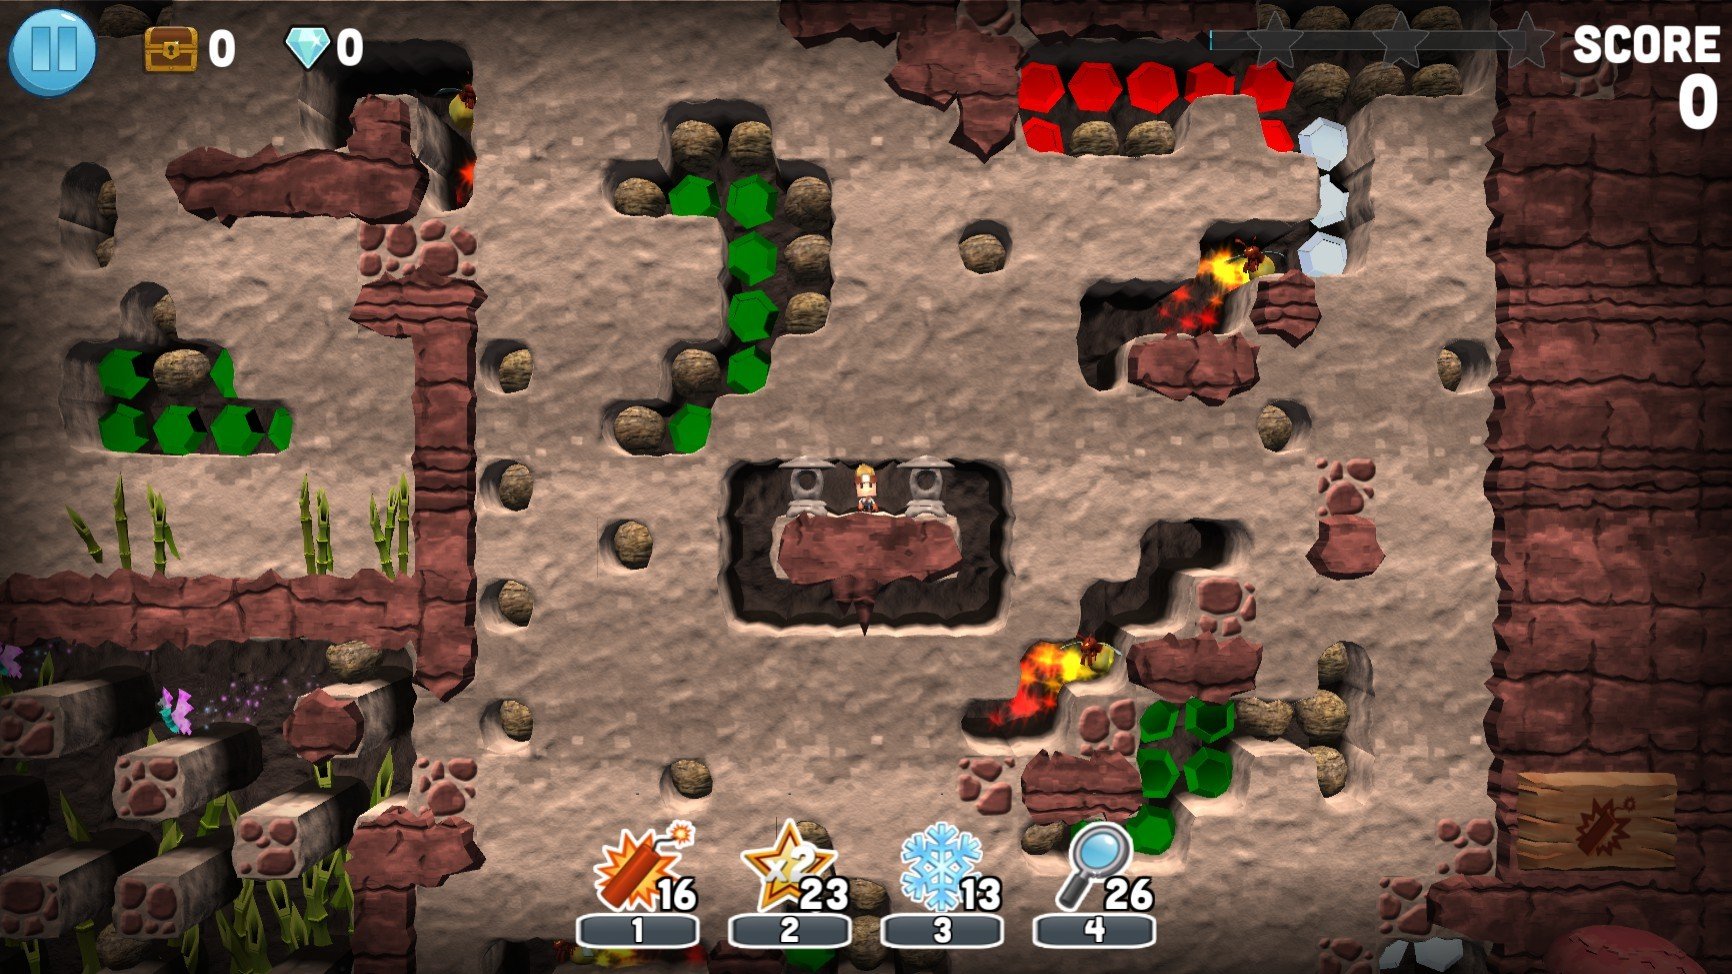 Action, adventure, arcade, BBG Entertainment, Boulder Dash, Boulder Dash 30th Anniversary, Boulder Dash 30th Anniversary Review, casual, indie, Nintendo Switch Review, Puzzle, Rating 5/10, Switch Review, Tapstar Interactive